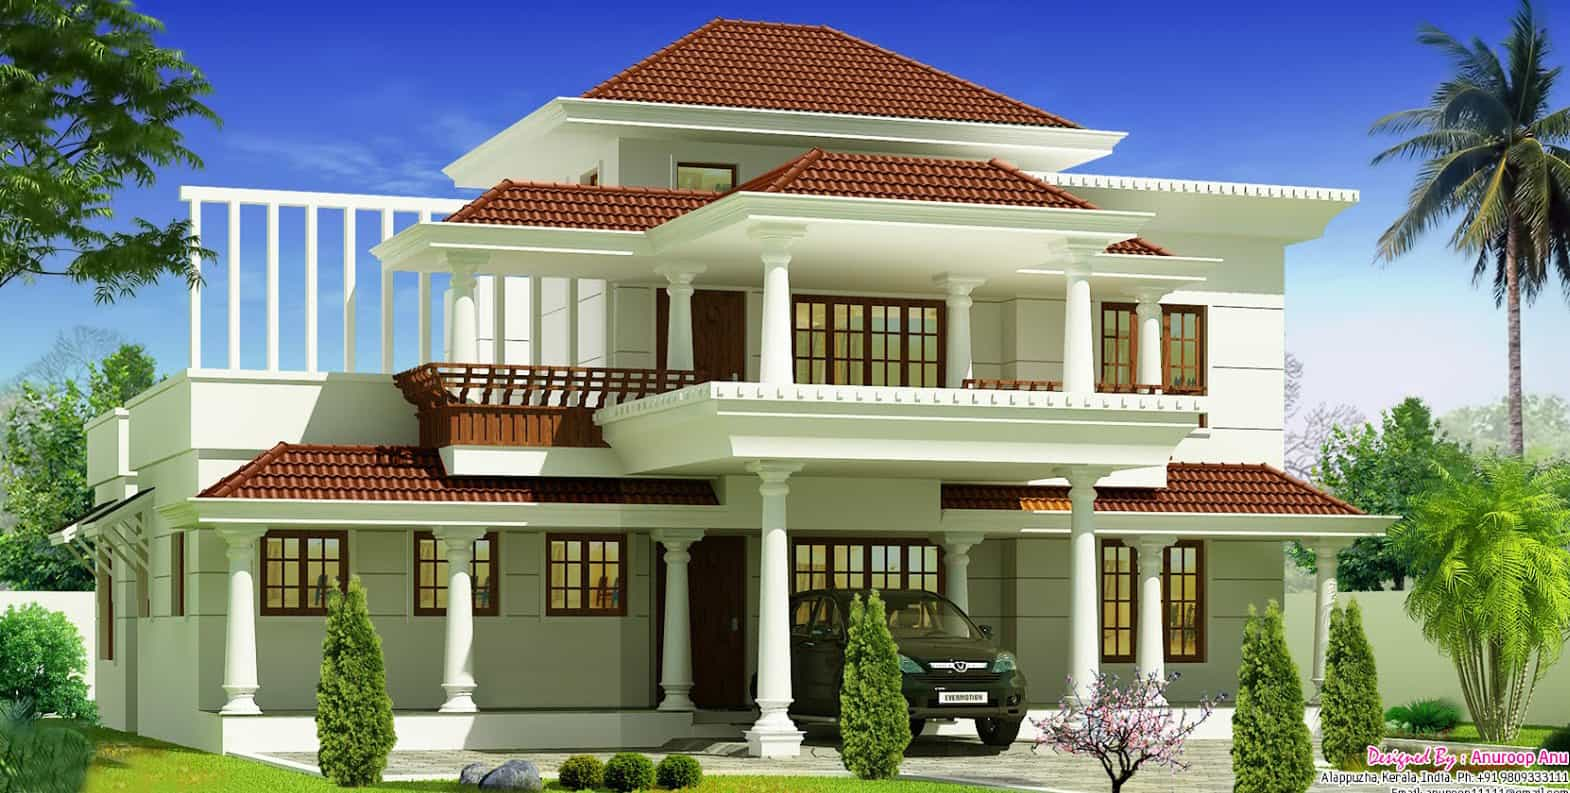 Home Design 1700 Square Feet Part - 35: Kerala Home Design At 1700 Sq.ft